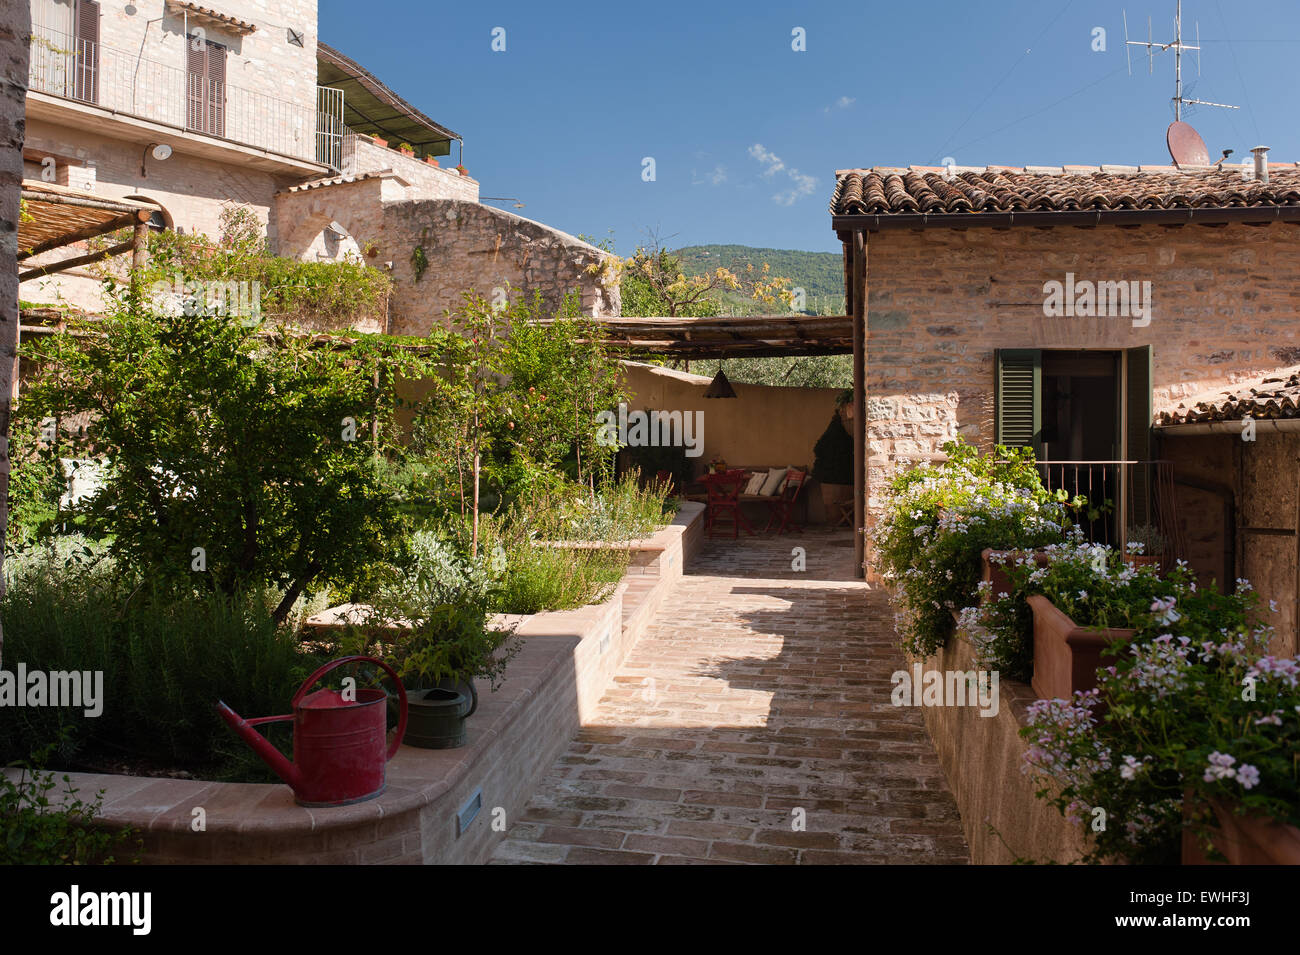 Umbrian brick paved courtyard with raised beds - Stock Image